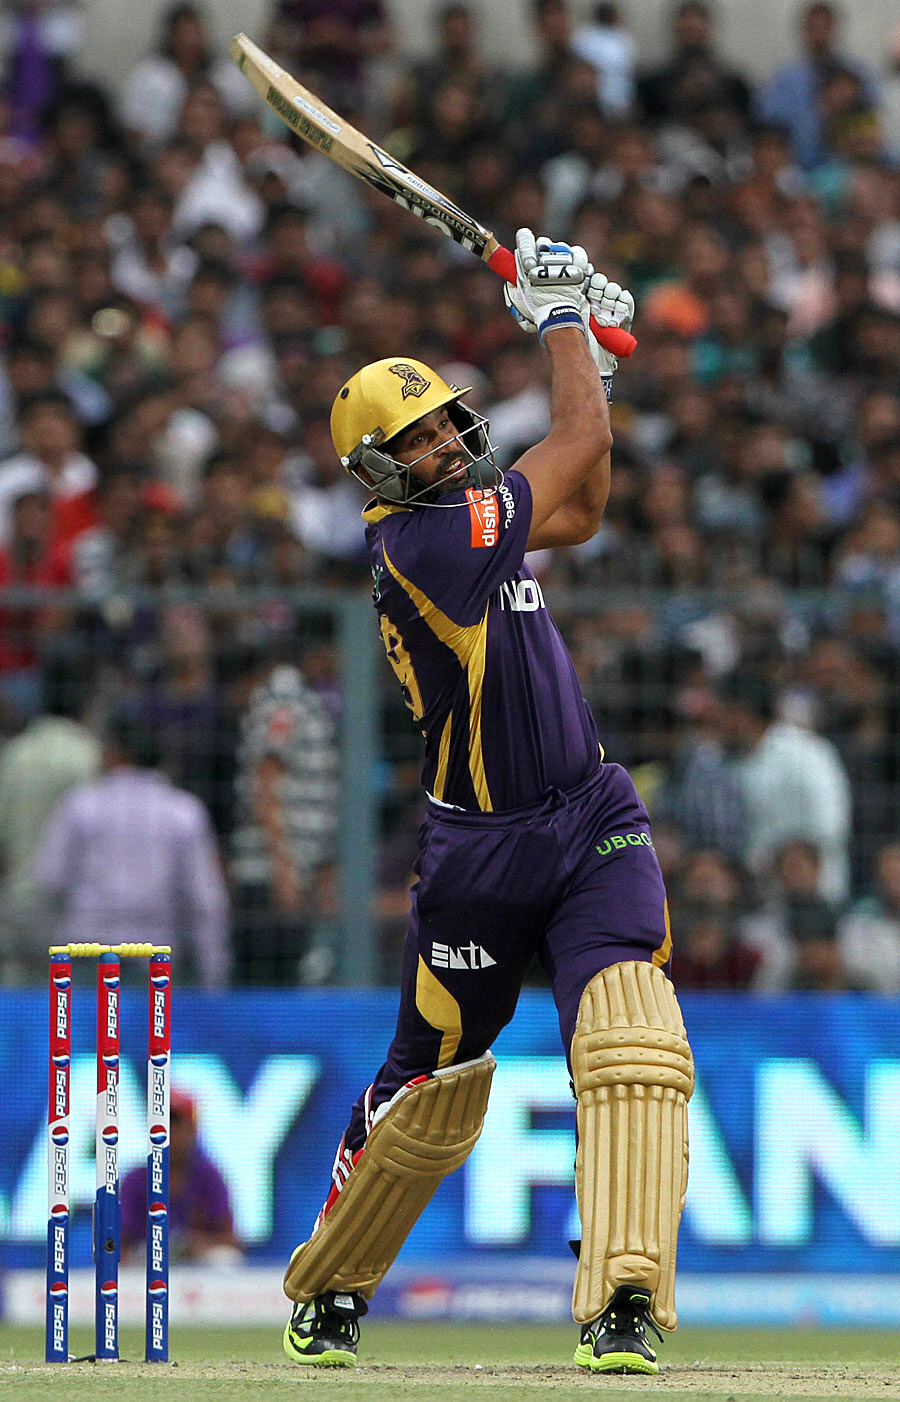 Download popular wallpapers 5 stars: KKR v CSK Match 26 IPL 2013 HD Photos- 5 Stars